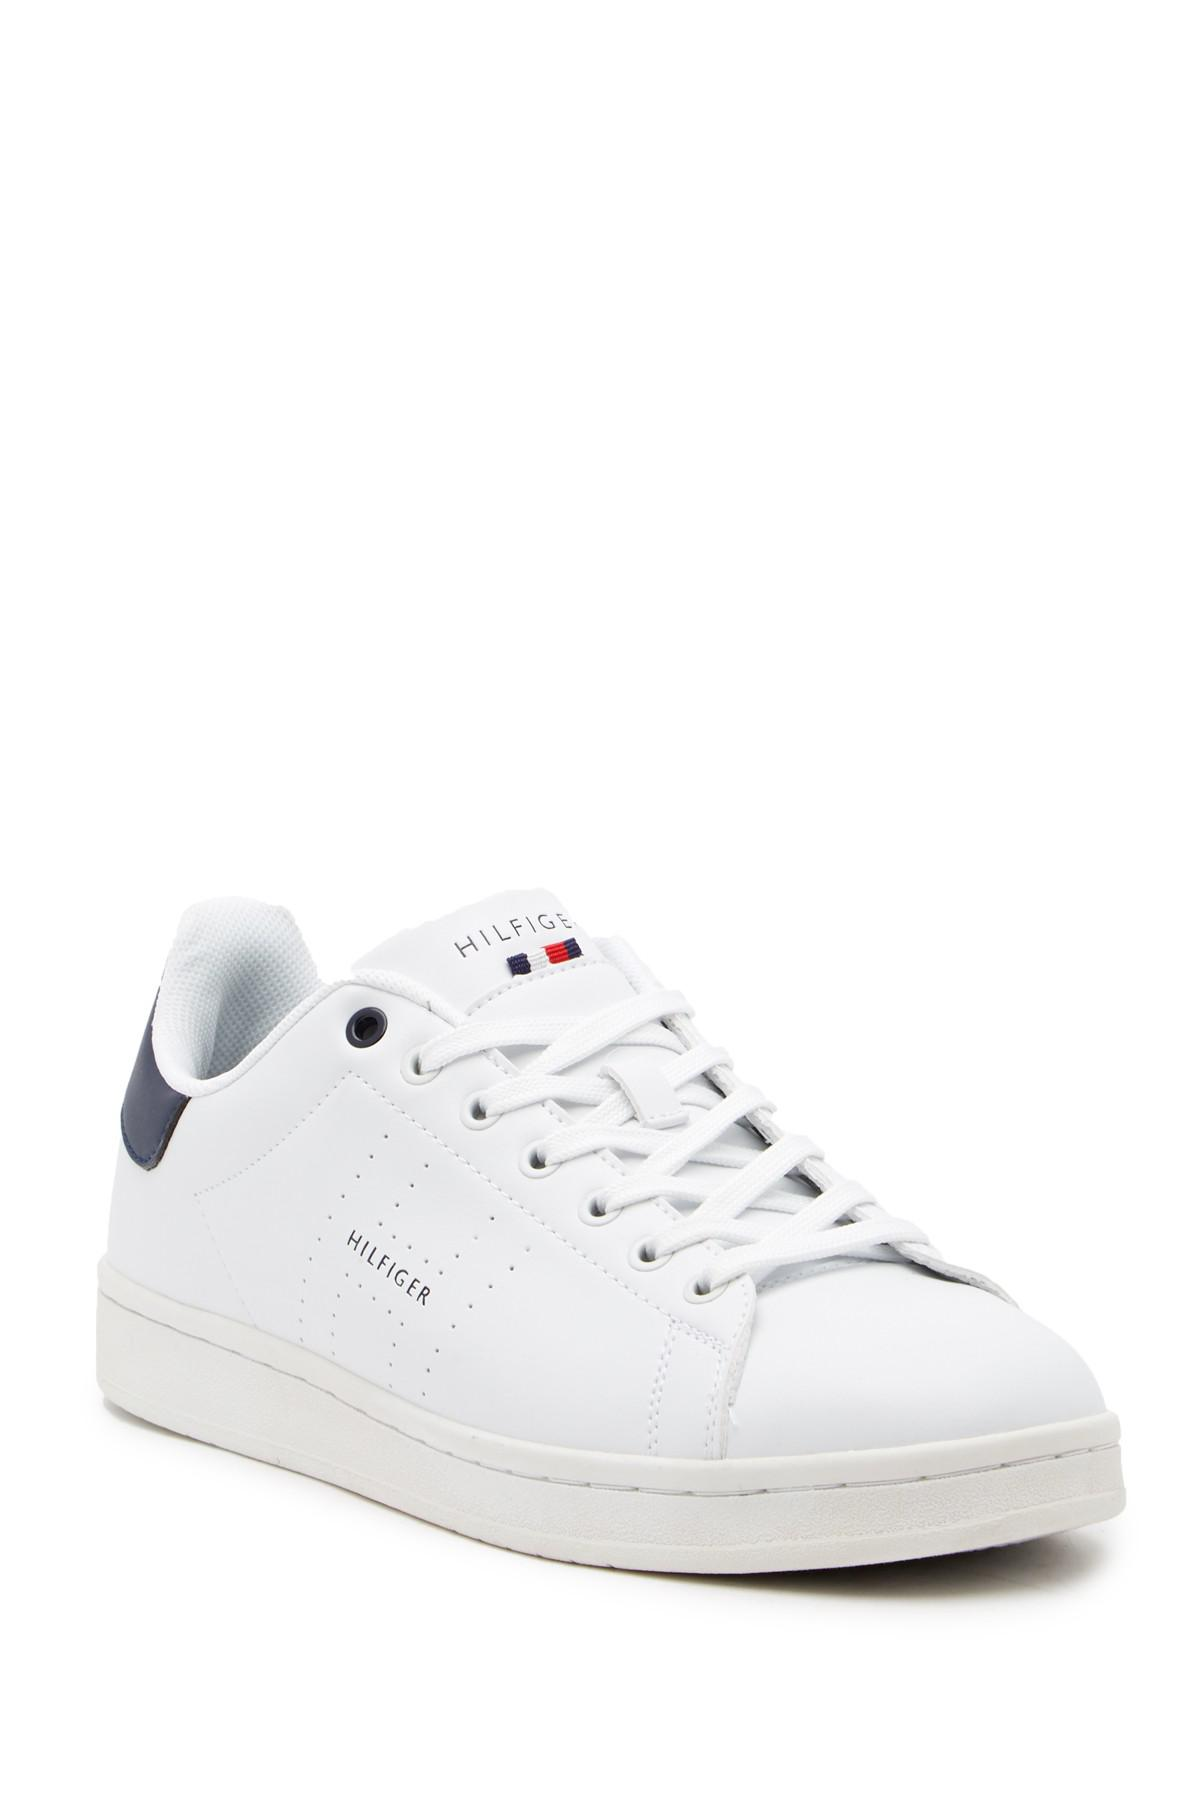 ce6d7aa3b70397 Lyst - Tommy Hilfiger Liston Sneaker in White for Men